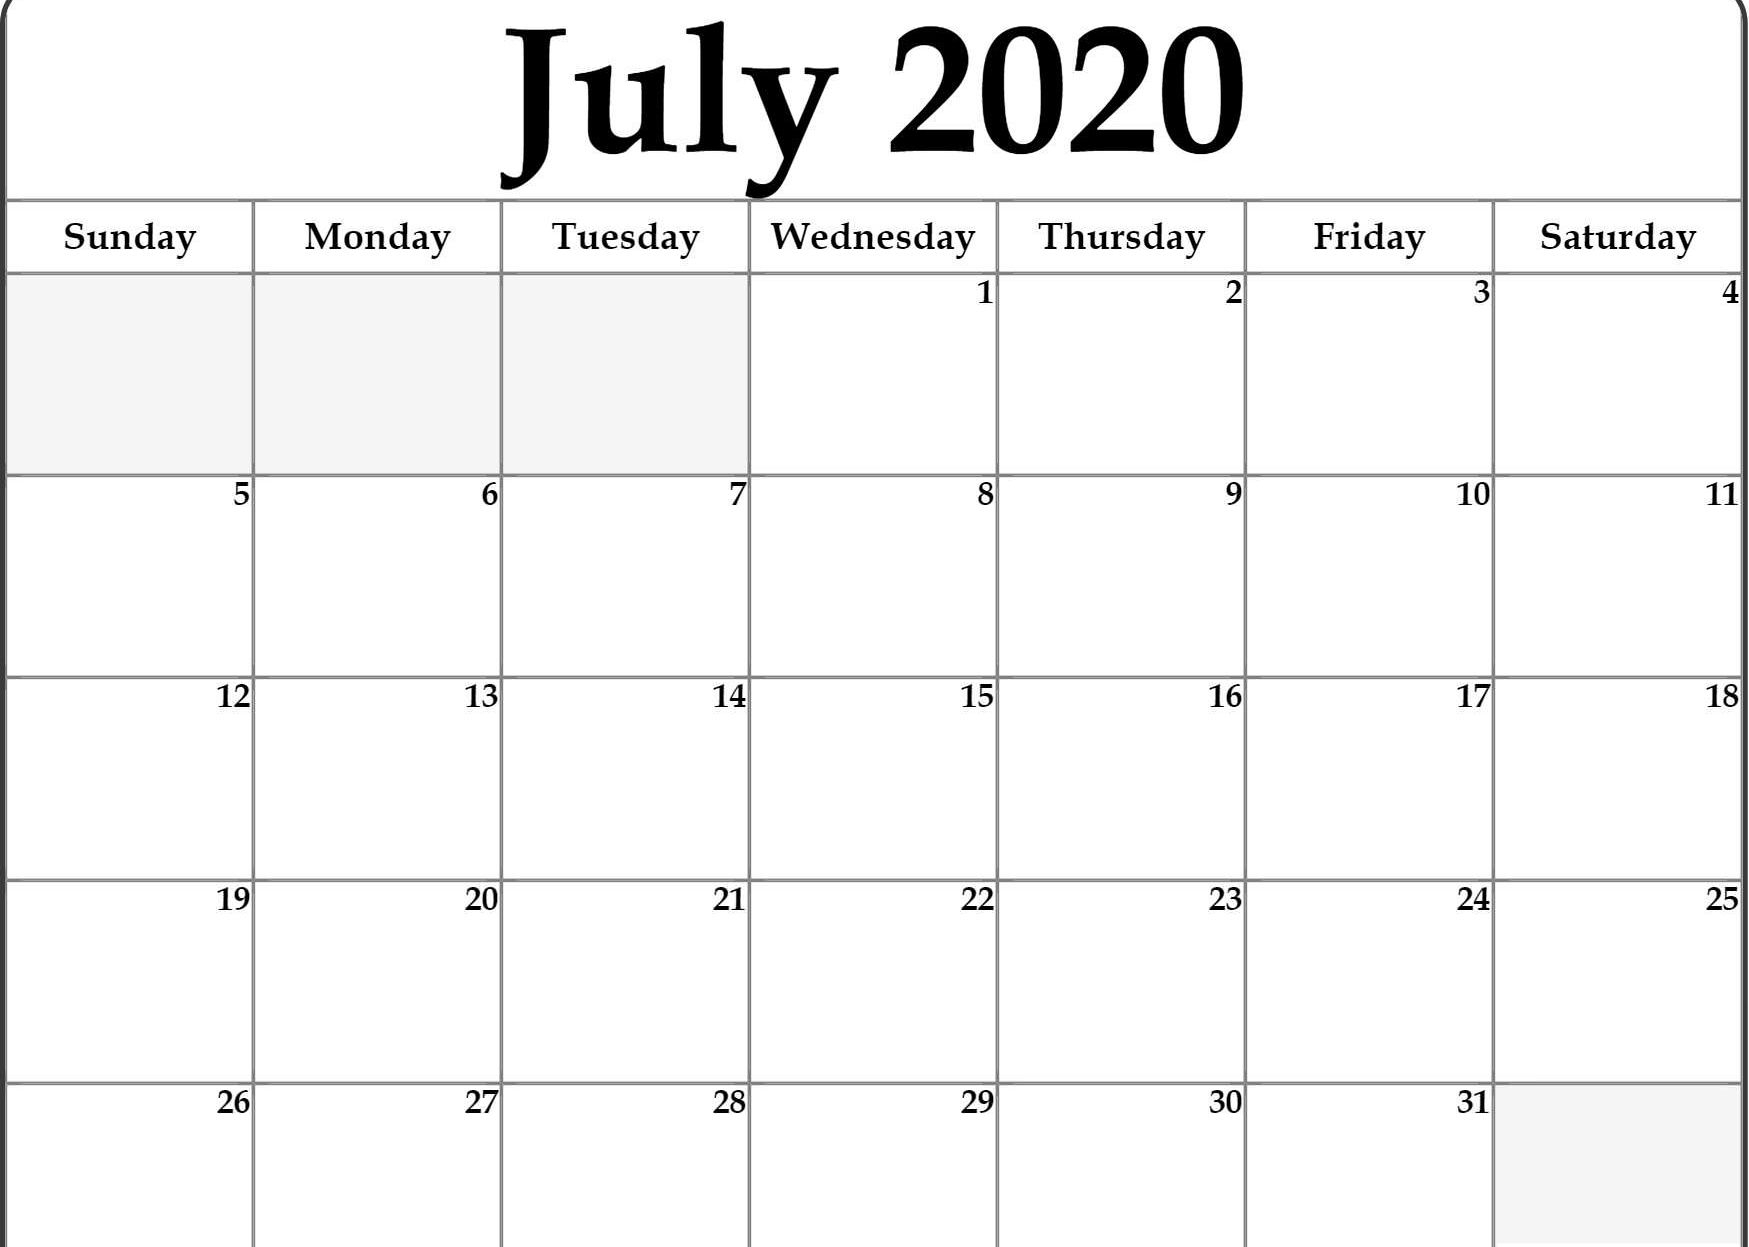 Printable Calendar For July 2020 | July Calendar, Printable regarding Online Free Printable Calendar 2020